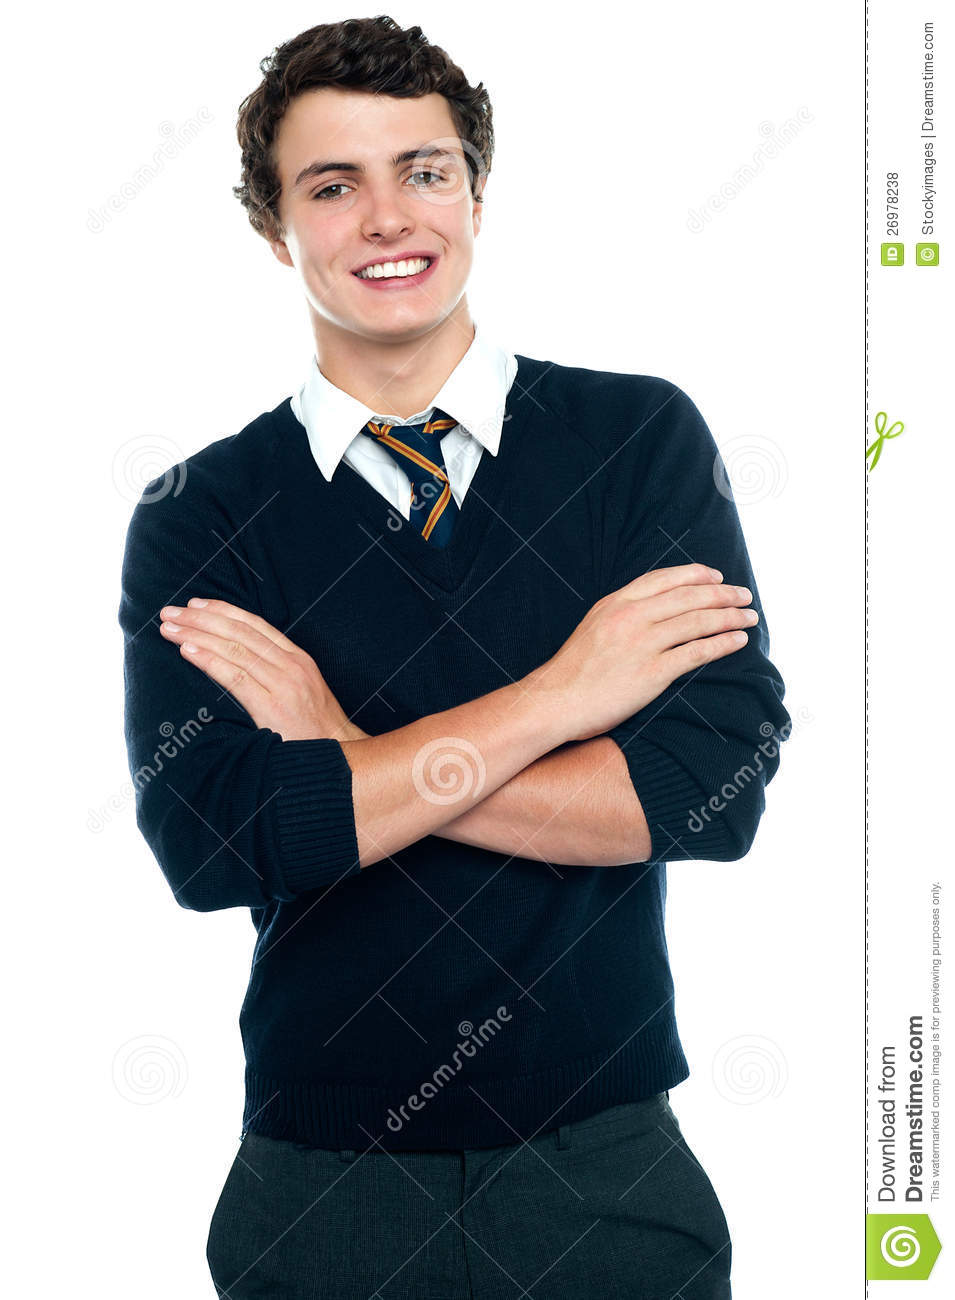 Profile Shot Of A School Going Teenager Stock Photo